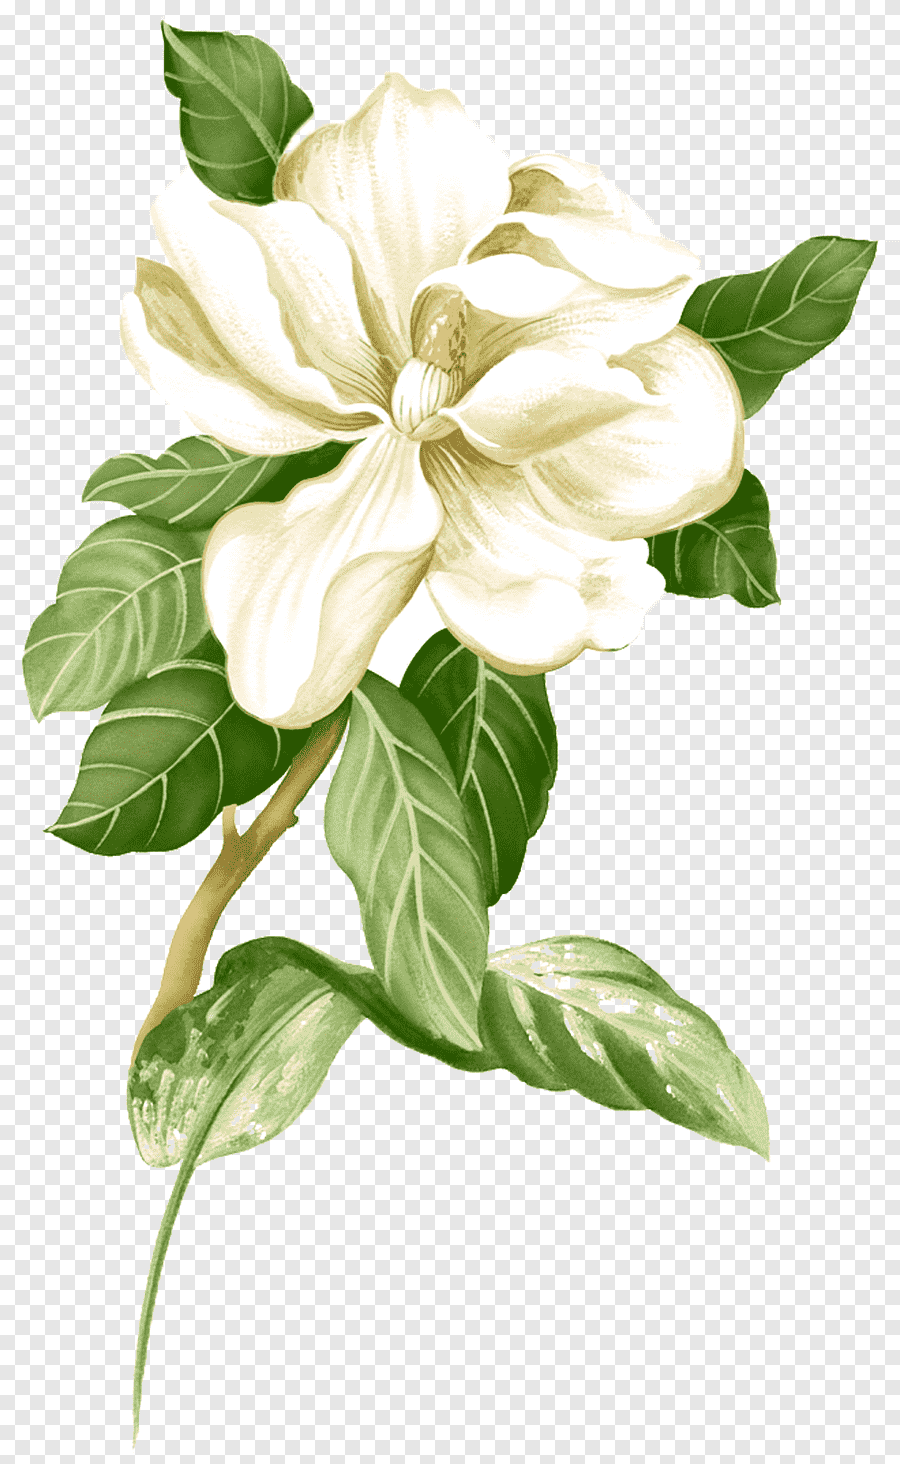 Magnolia Flower Png : magnolia, flower, Painted, White, Jasmine, Material,, Magnolia, Flower, Illustration,, Watercolor, Painting,, Arranging, PNGEgg